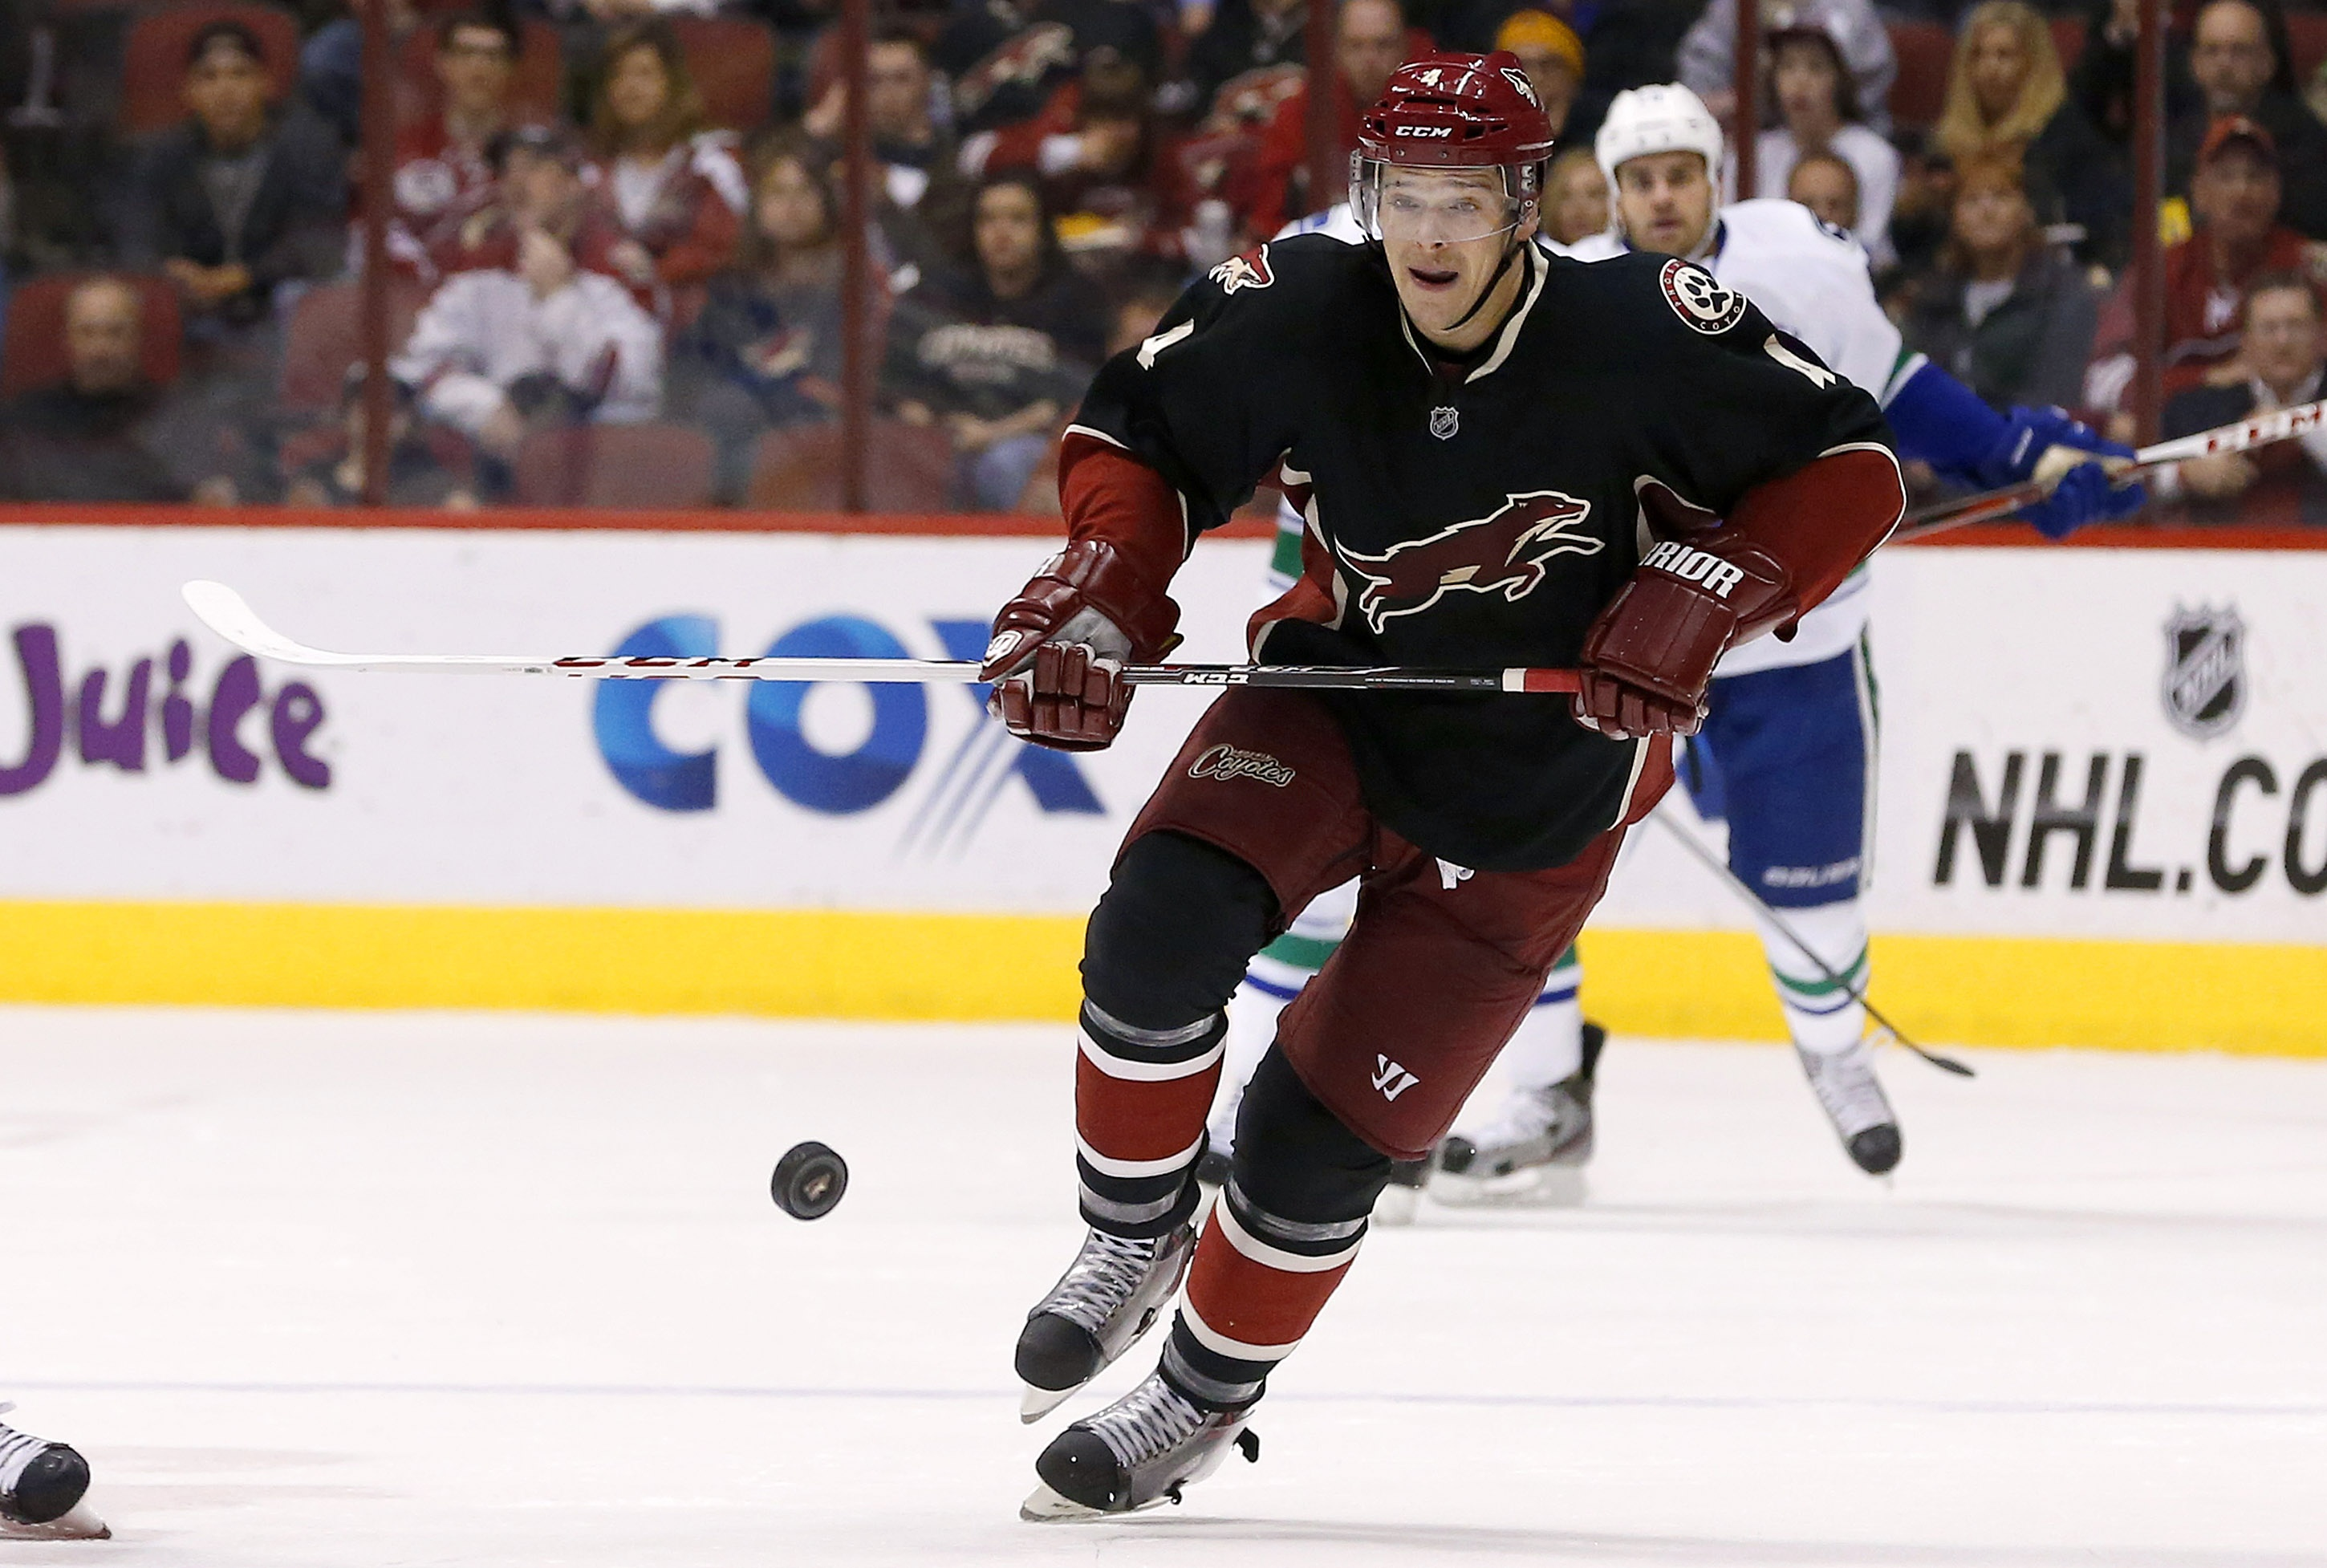 Phoenix Coyotes' Zbynek Michalek, of the Czech Republic, plays in his 600th career NHL hockey game during the first period against the Vancouver Canucks on Tuesday, Nov. 5, 2013, in Glendale, Ariz